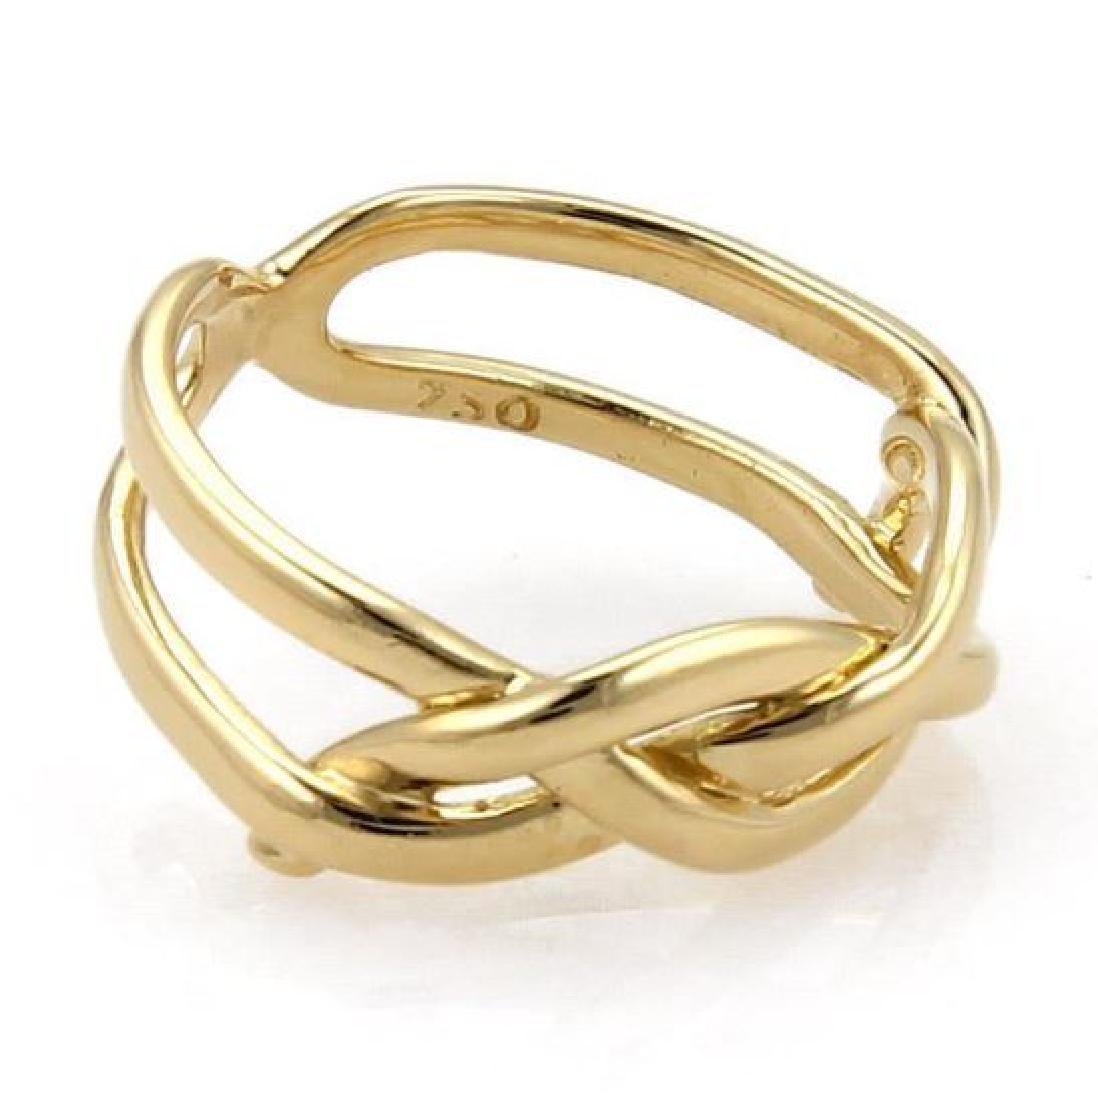 Tiffany & Co Vintage 18k Yellow Gold Infinity Ring - 5